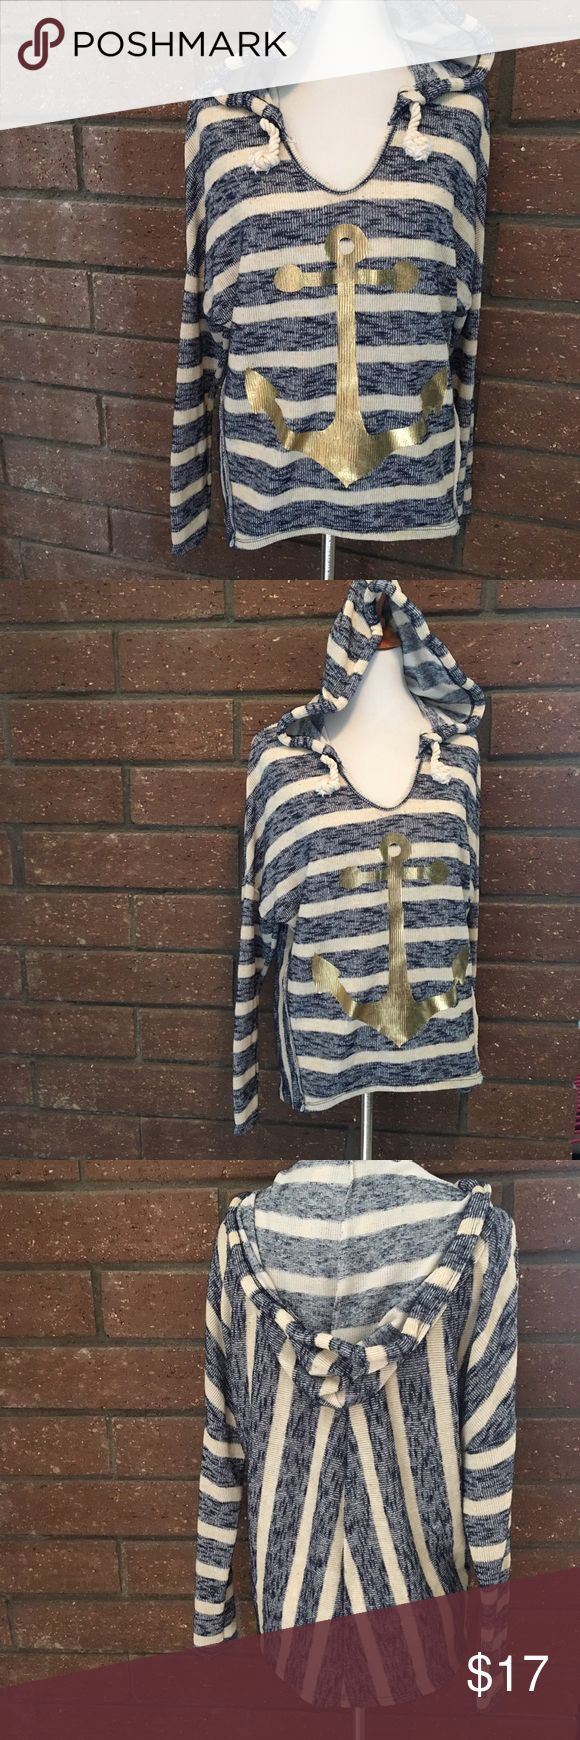 """Blushed Nautical Anchor Hoodie This striped nautical hoodie is great for summer nights or as a bathing suit cover! It can also be layered in cooler months. Adorable rope drawstrings and gold anchor. 48% polyester, 43% rayon, 4% spandex. Great preloved condition. Measurements flat are 23.5"""" pit to pit & slight high low is 23"""" front to 26"""" back long. Blushed Tops Sweatshirts & Hoodies"""